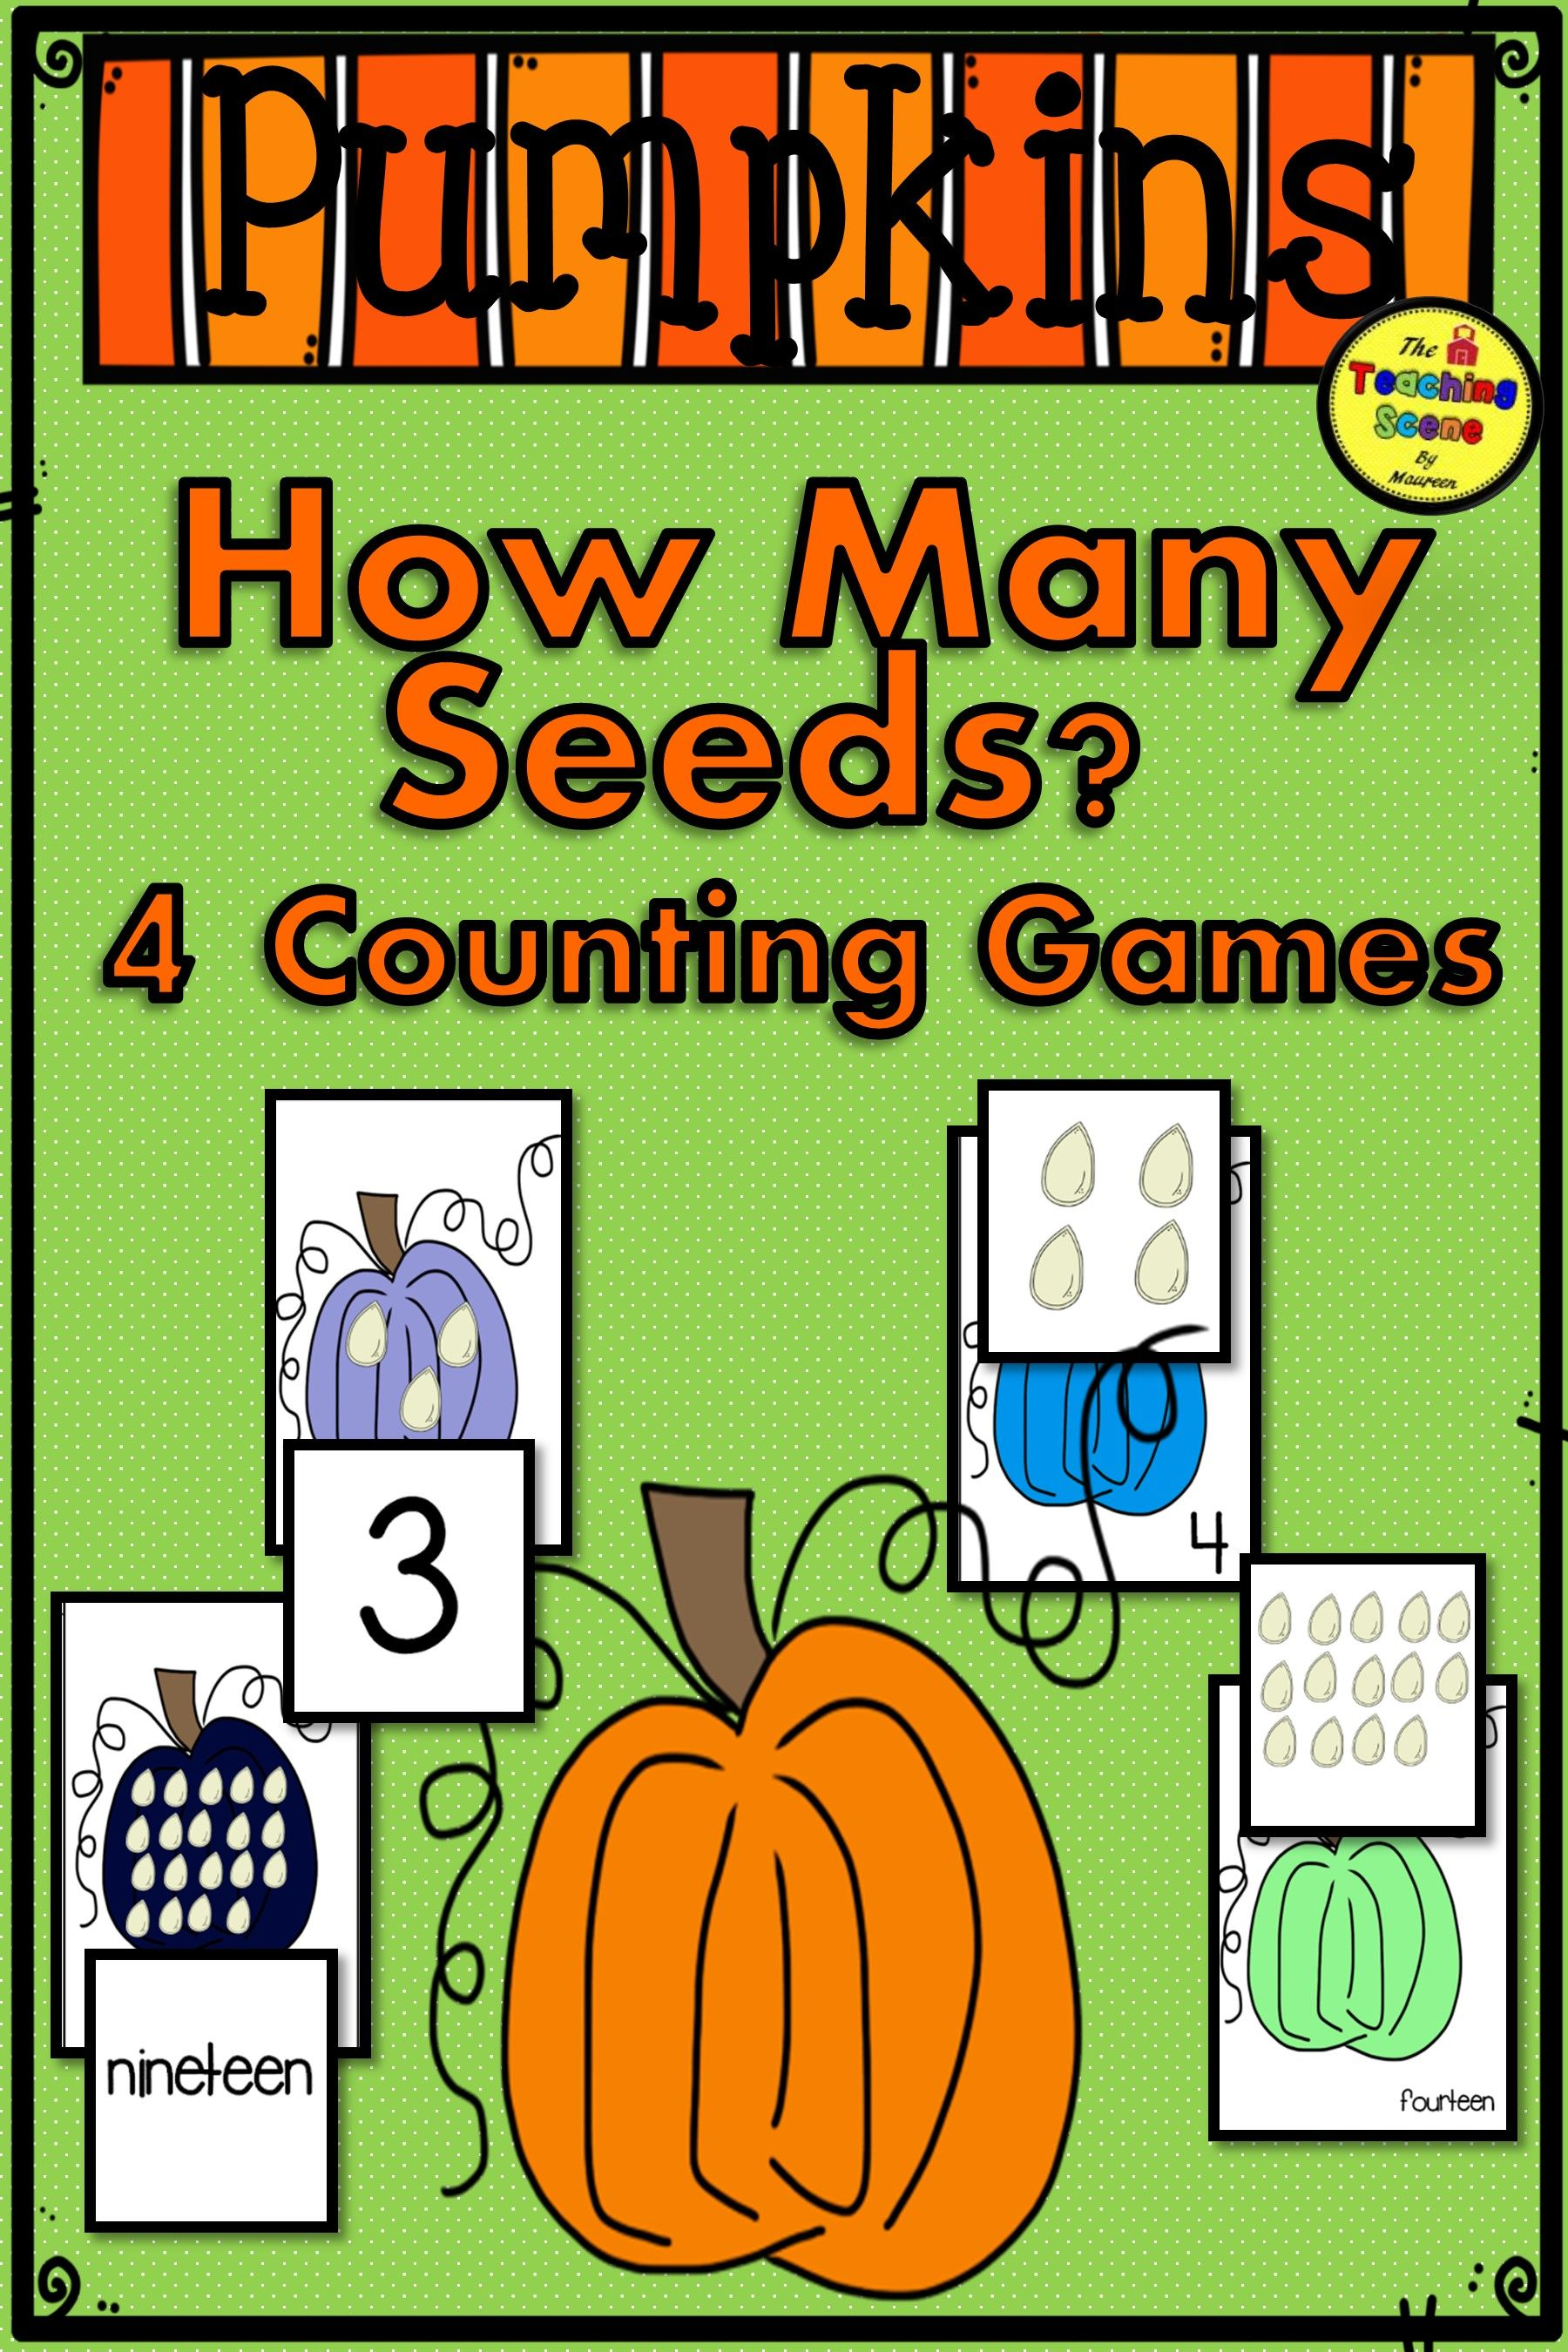 Pumpkin 0 20 Counting Games How Many Seeds